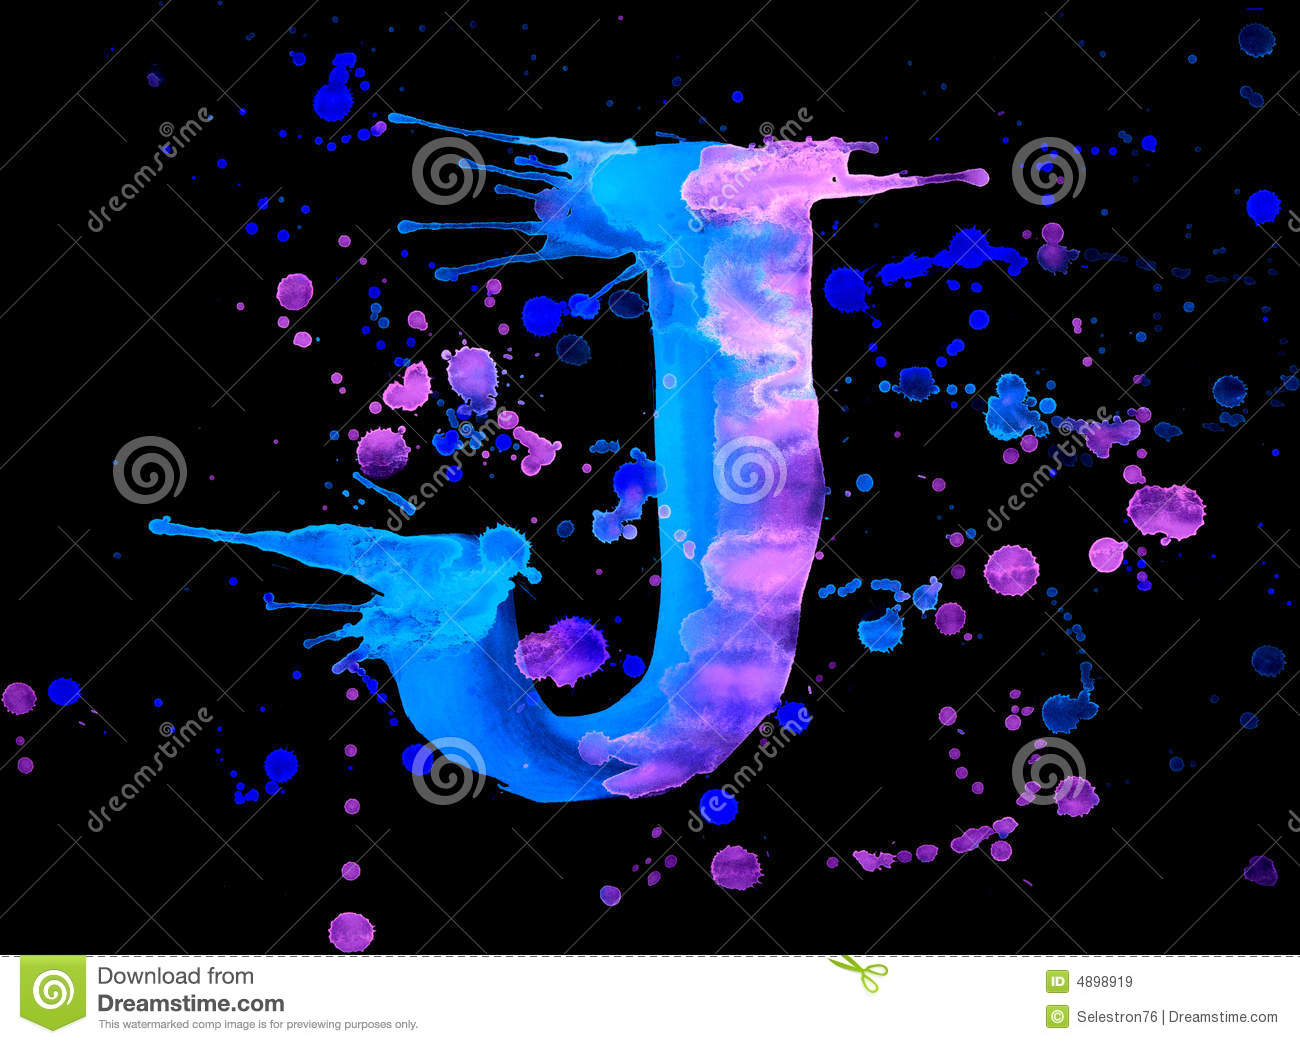 Royalty Free Stock Images Neon Watercolor Paint Letter J Image4898919 on Artistic Alphabet Letters